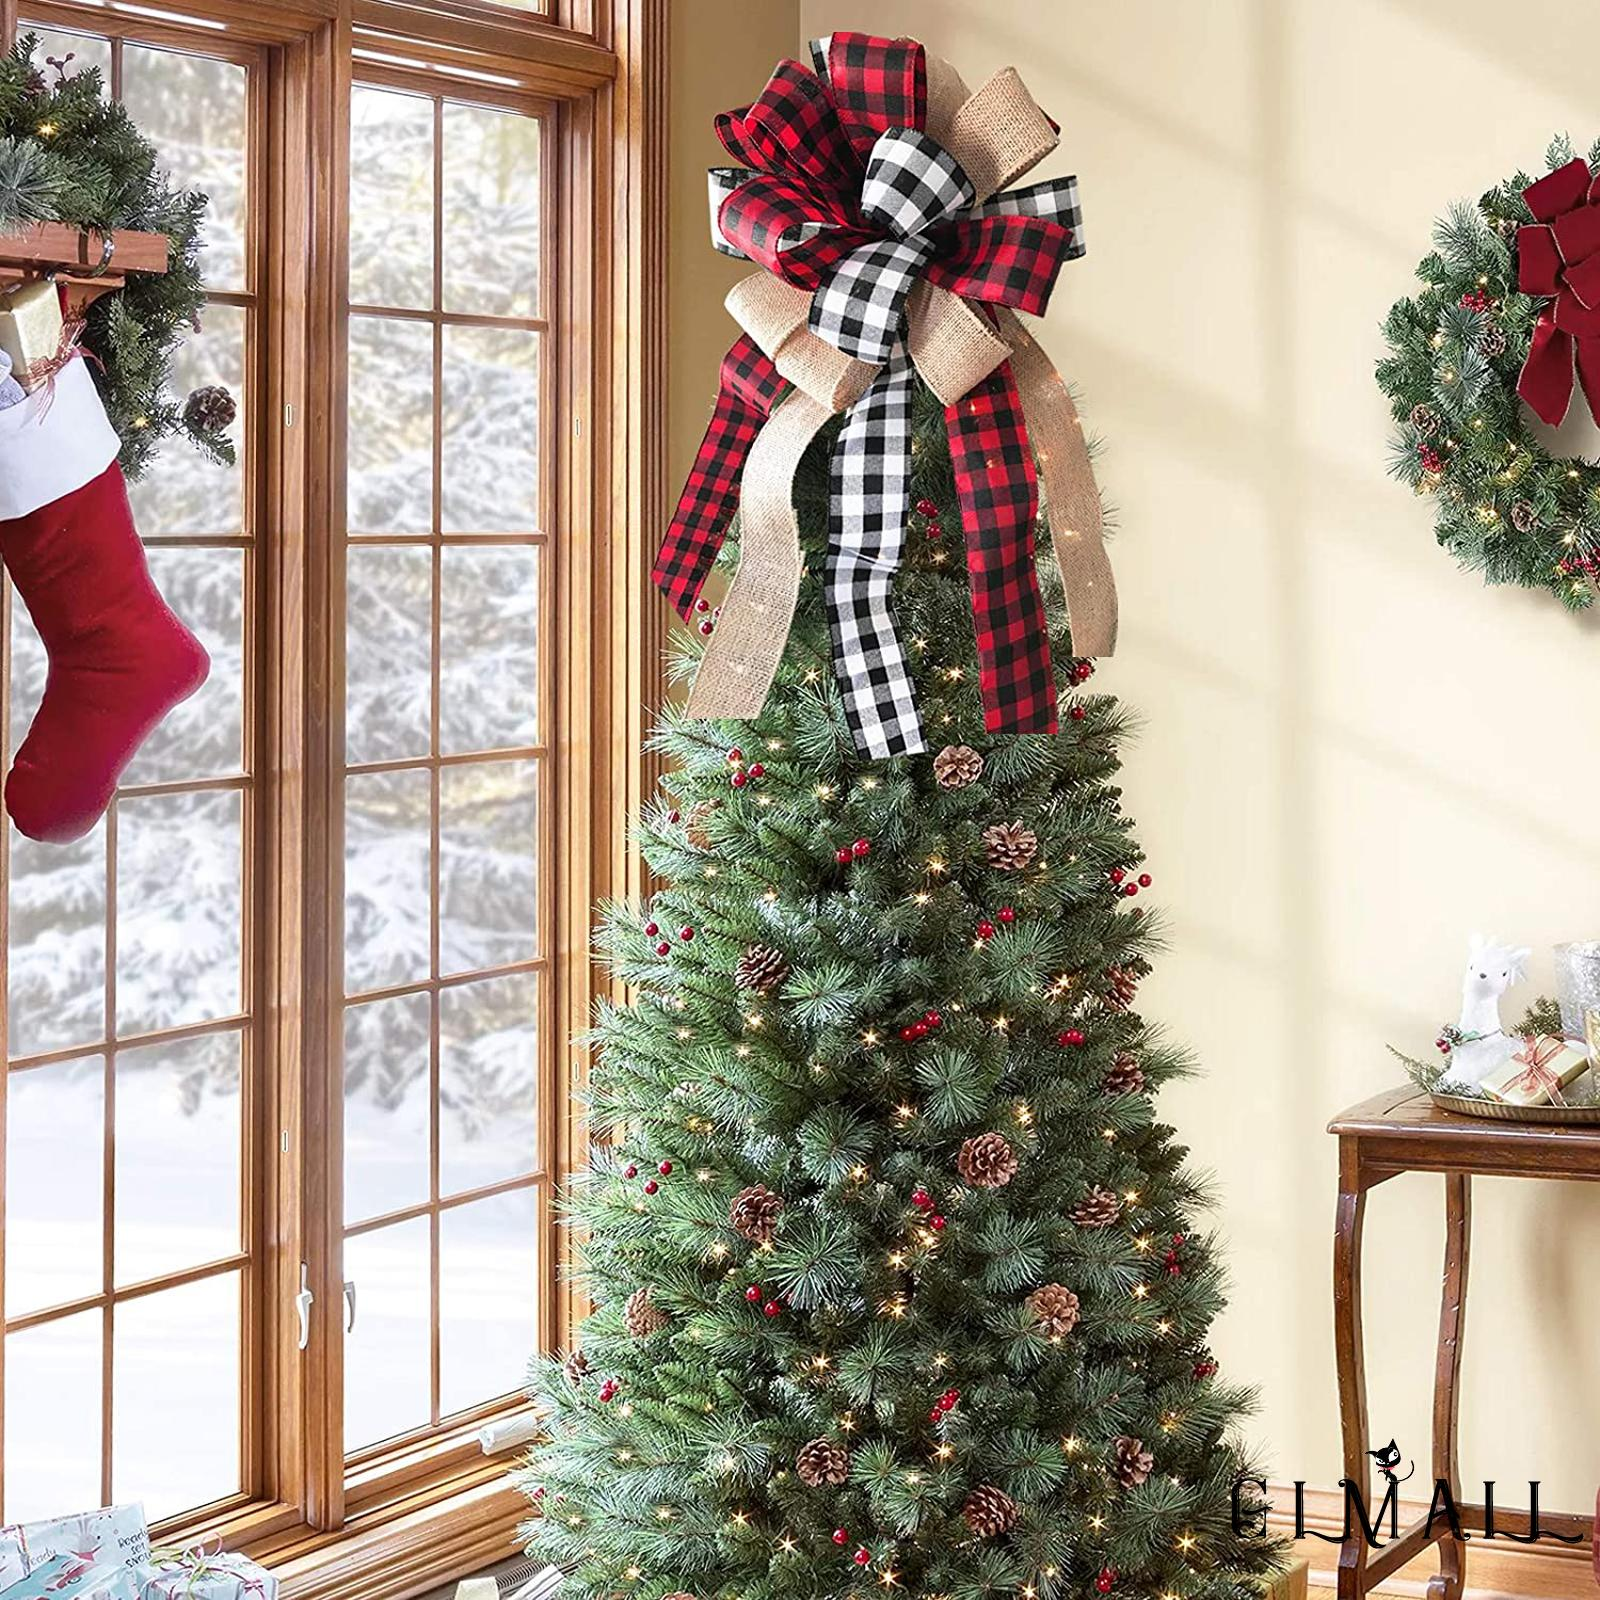 Gml Christmas Tree Topper Rustic Buffalo Plaid Decorative Bow For Holiday Home Party Decor Shopee Thailand